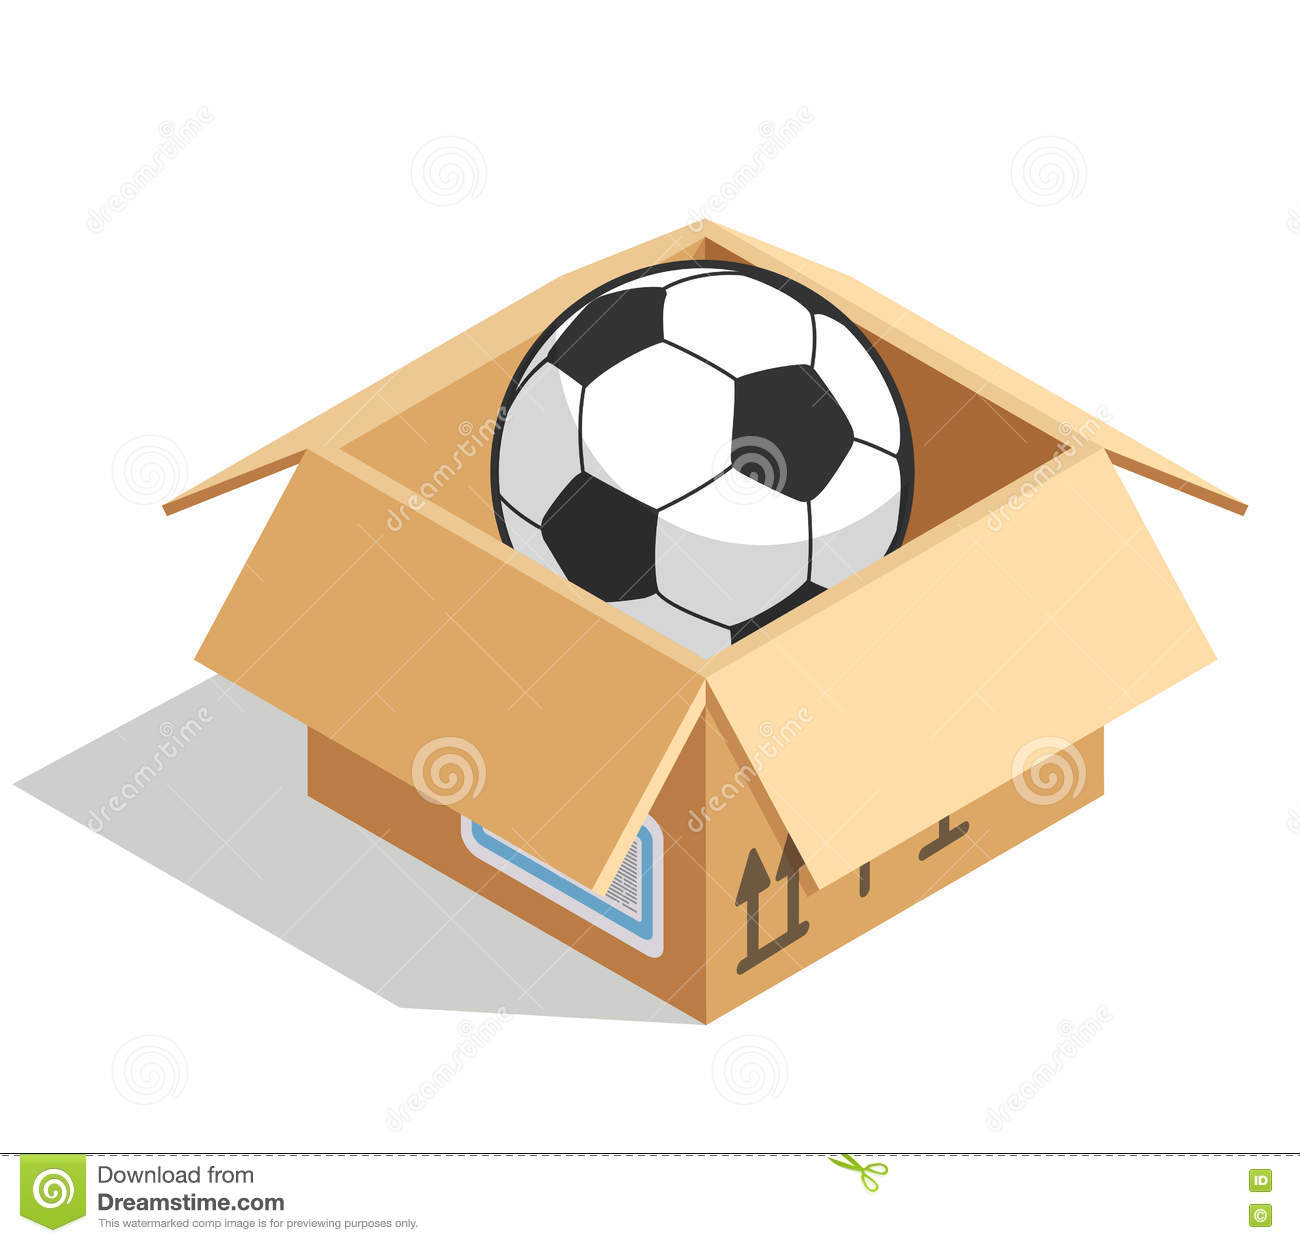 banner royalty free Ball box station . In the clipart.